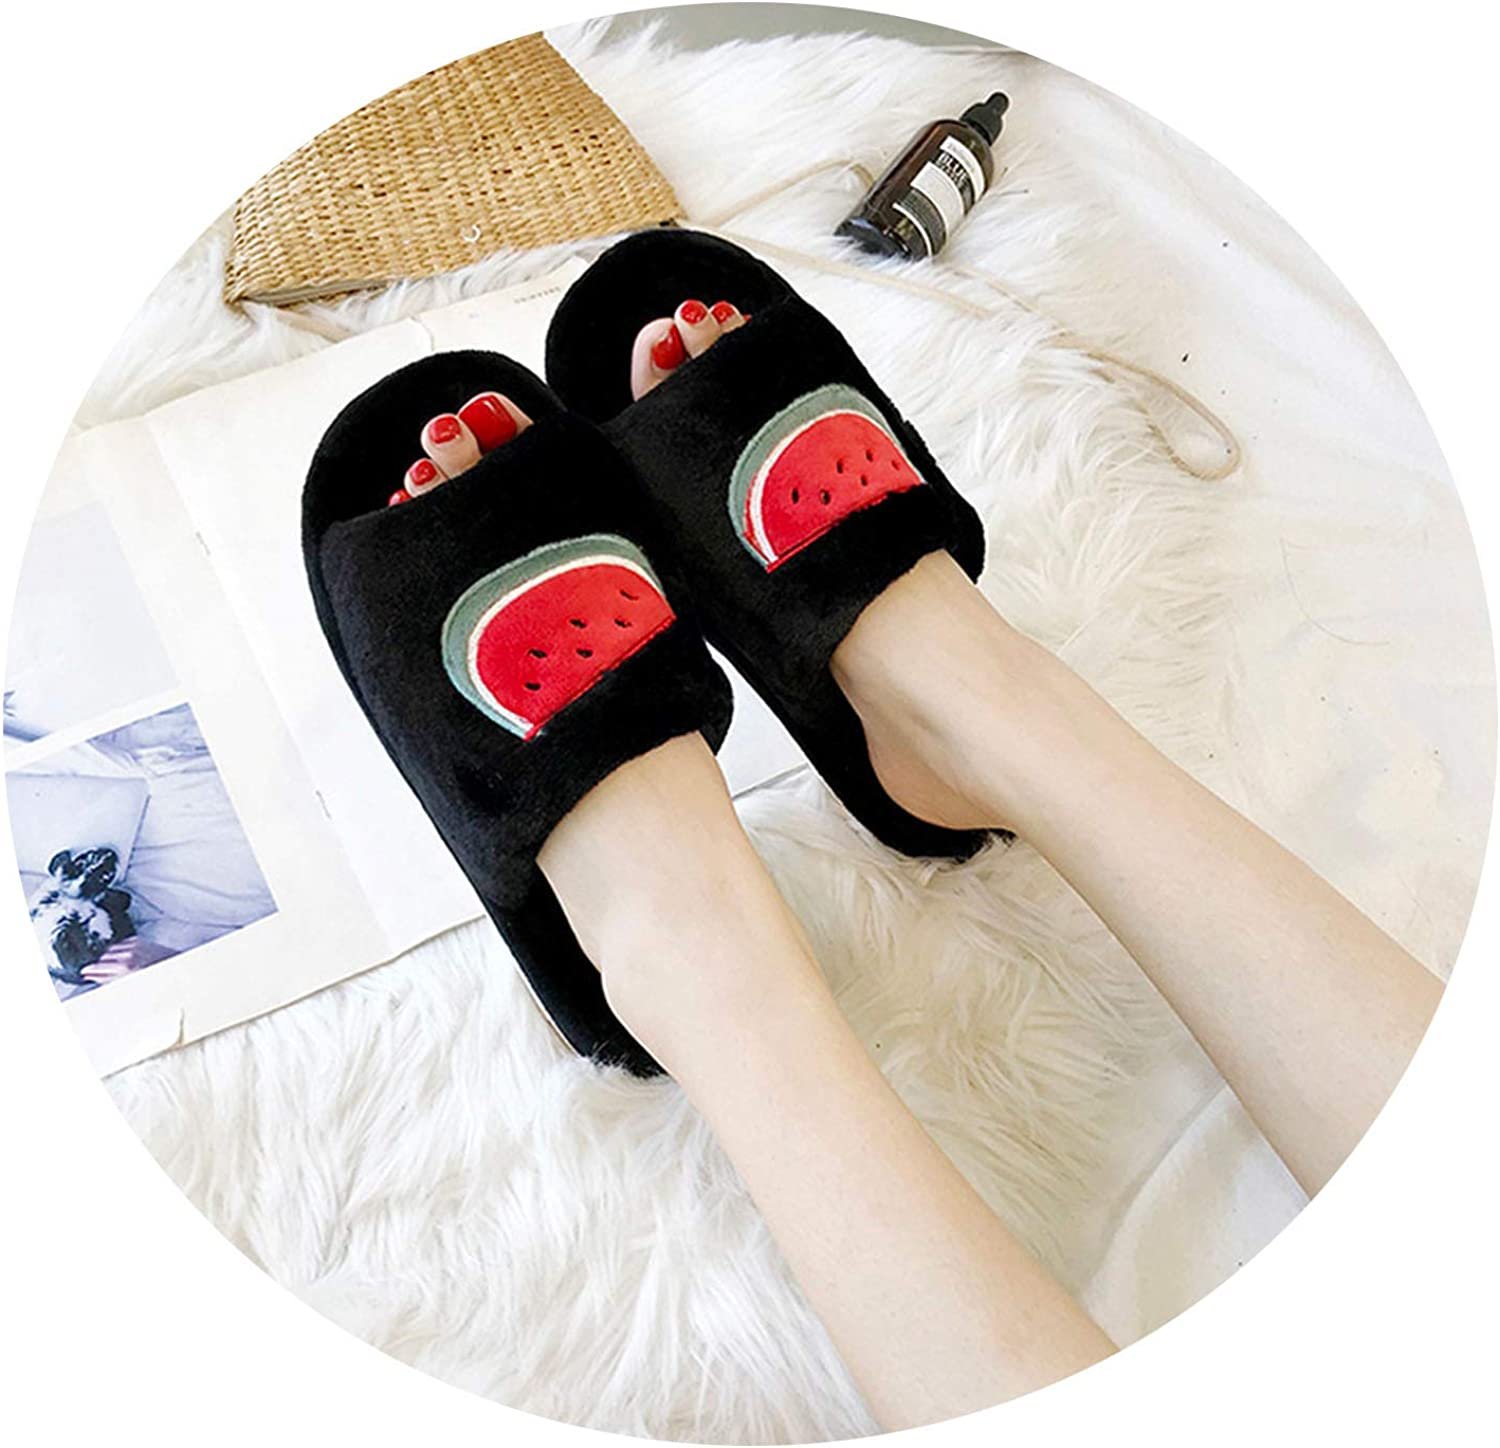 Womens Shoes 2019 Novelty Flock Home Slippers Casual Slip-Resistant Sneakers Womens Shoes,Negro,37,U.S